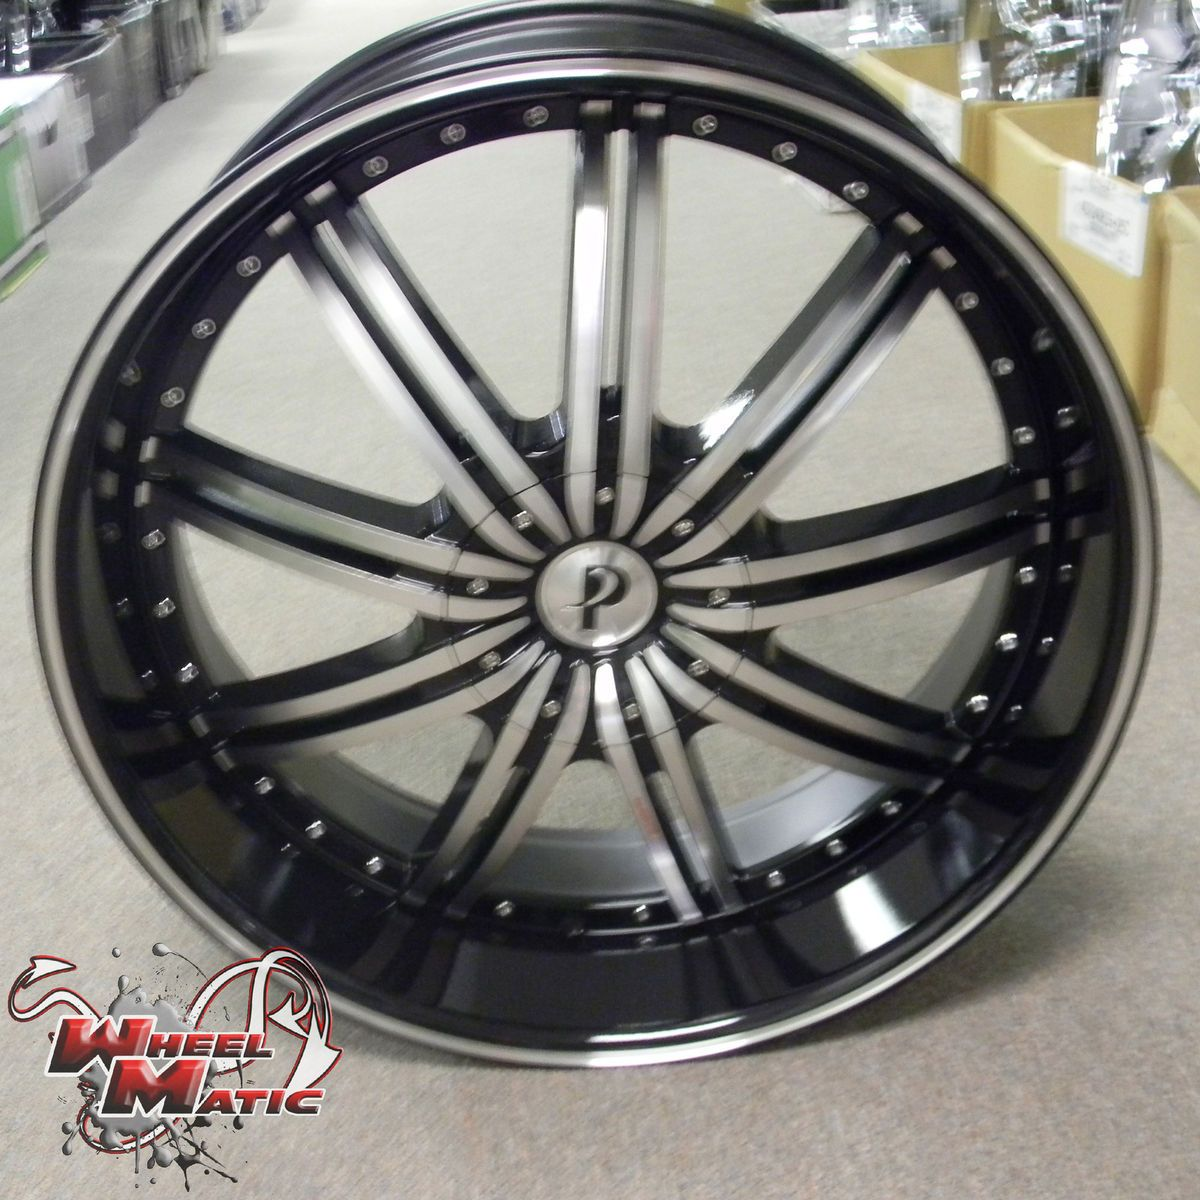 New Phino PW118 24 5x115 120 Black Machine Wheels Rims Well Beat Any